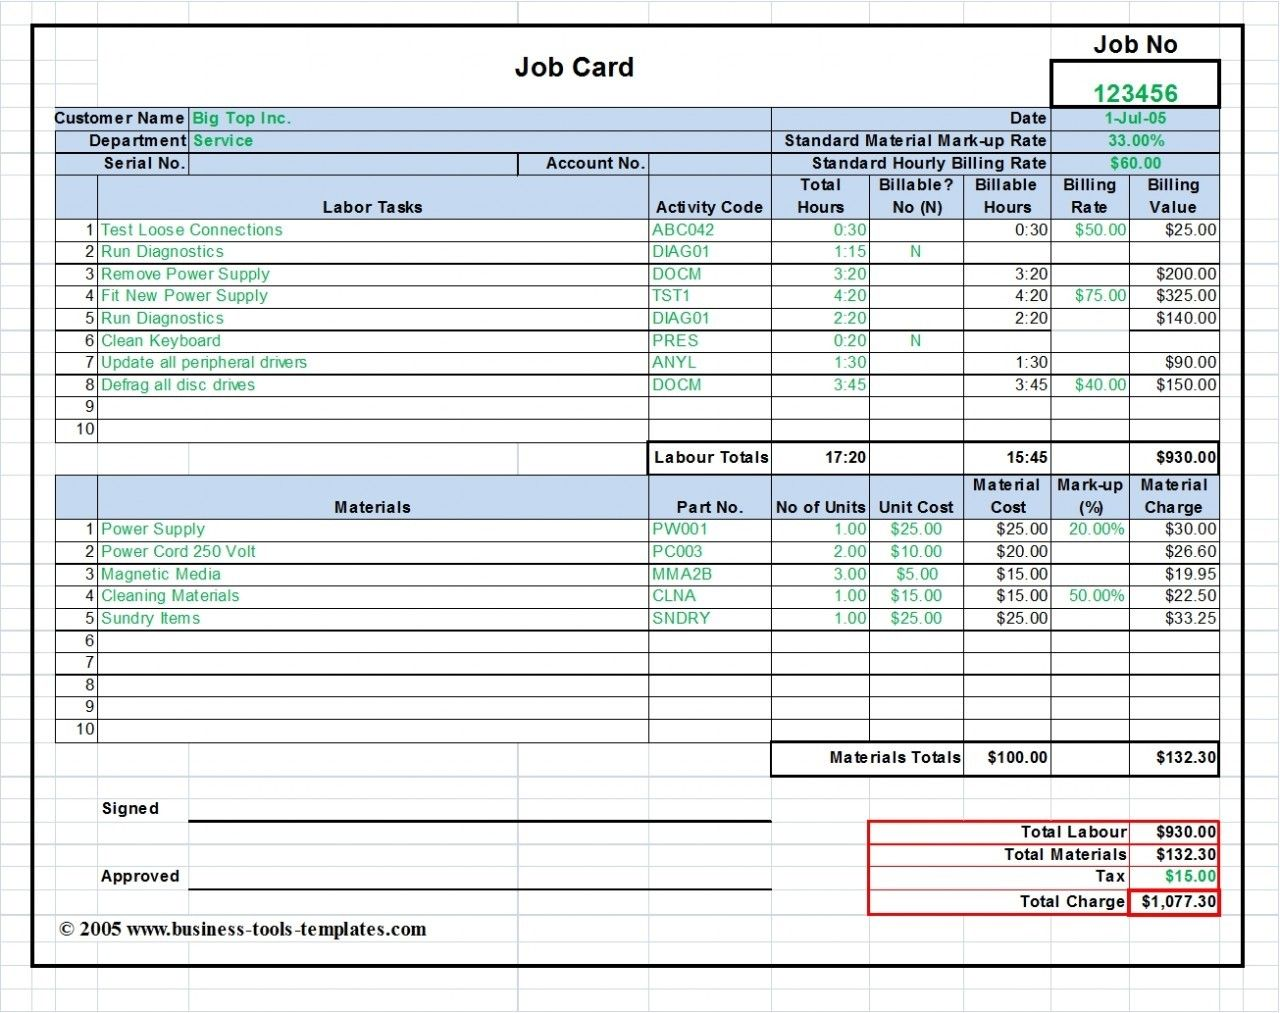 How To Calculate Labor Cost In Excel - arxiusarquitectura Pertaining To Job Cost Report Template Excel